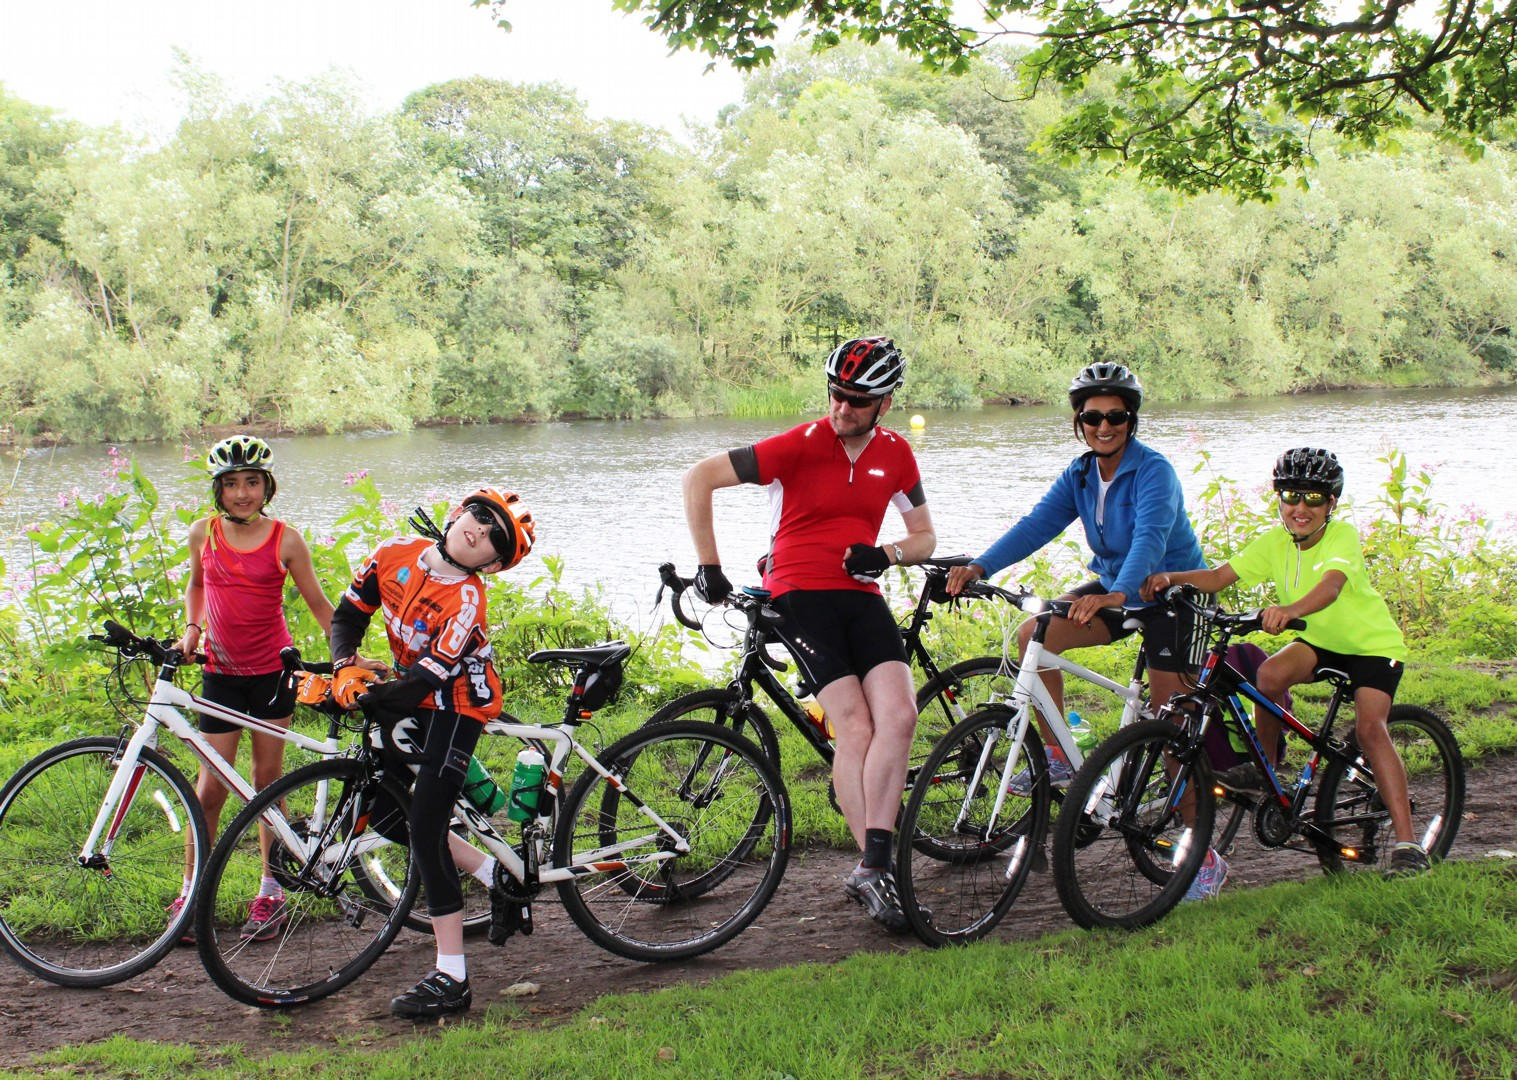 family-supported-hadrians-cycleway-hadrians-wall.jpg - UK - Hadrian's Cycleway 4 Day - Supported Family Cycling Holiday - Family Cycling